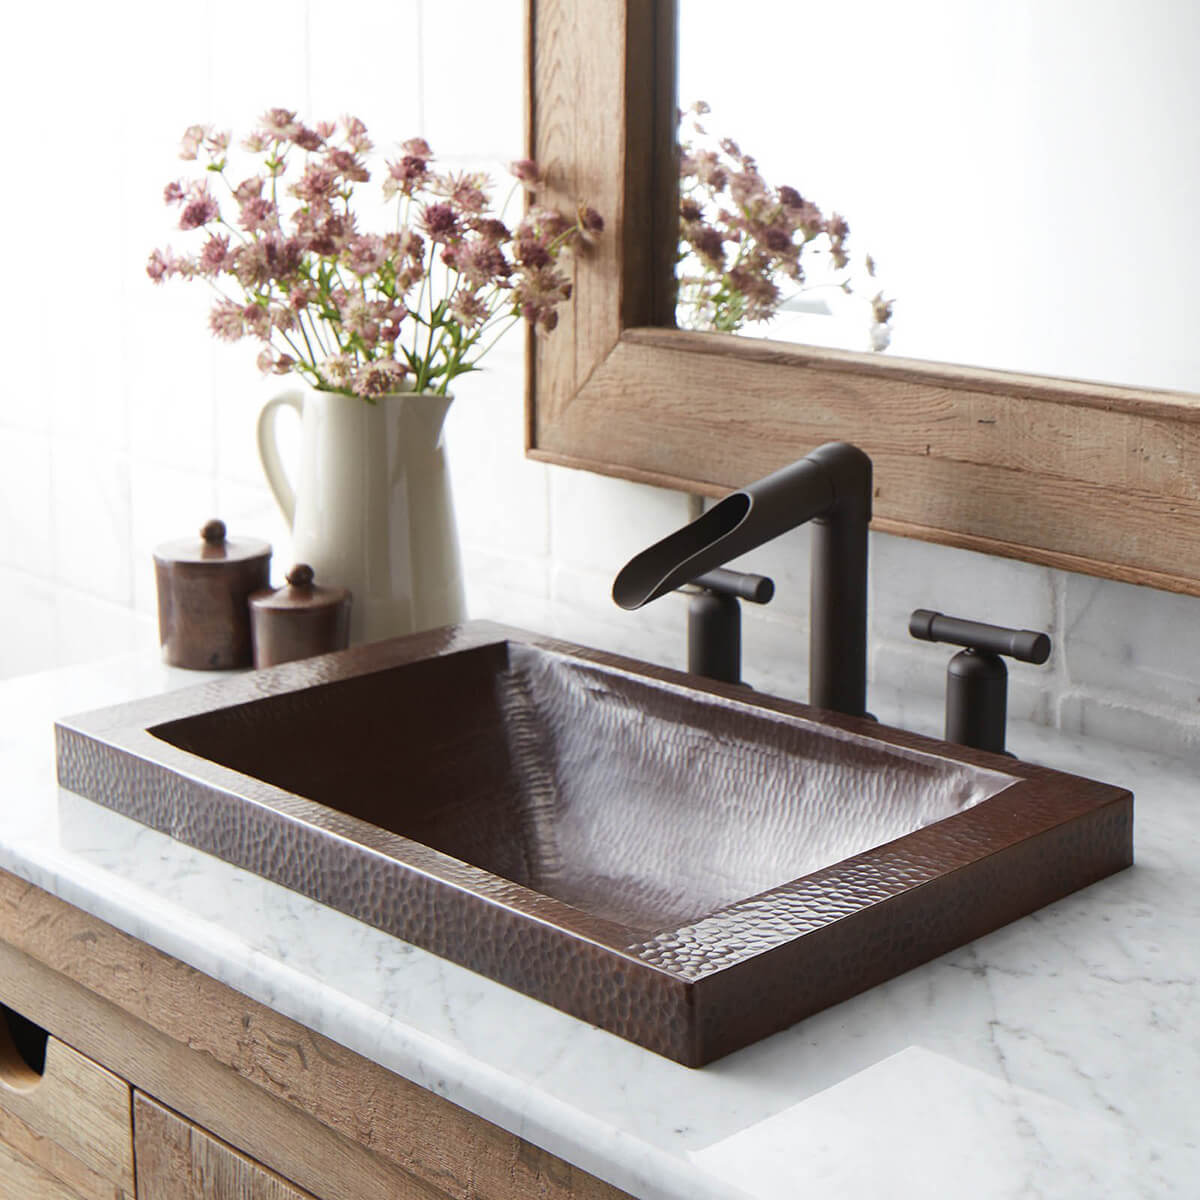 Standout and Unique Brass-Inspired Basin